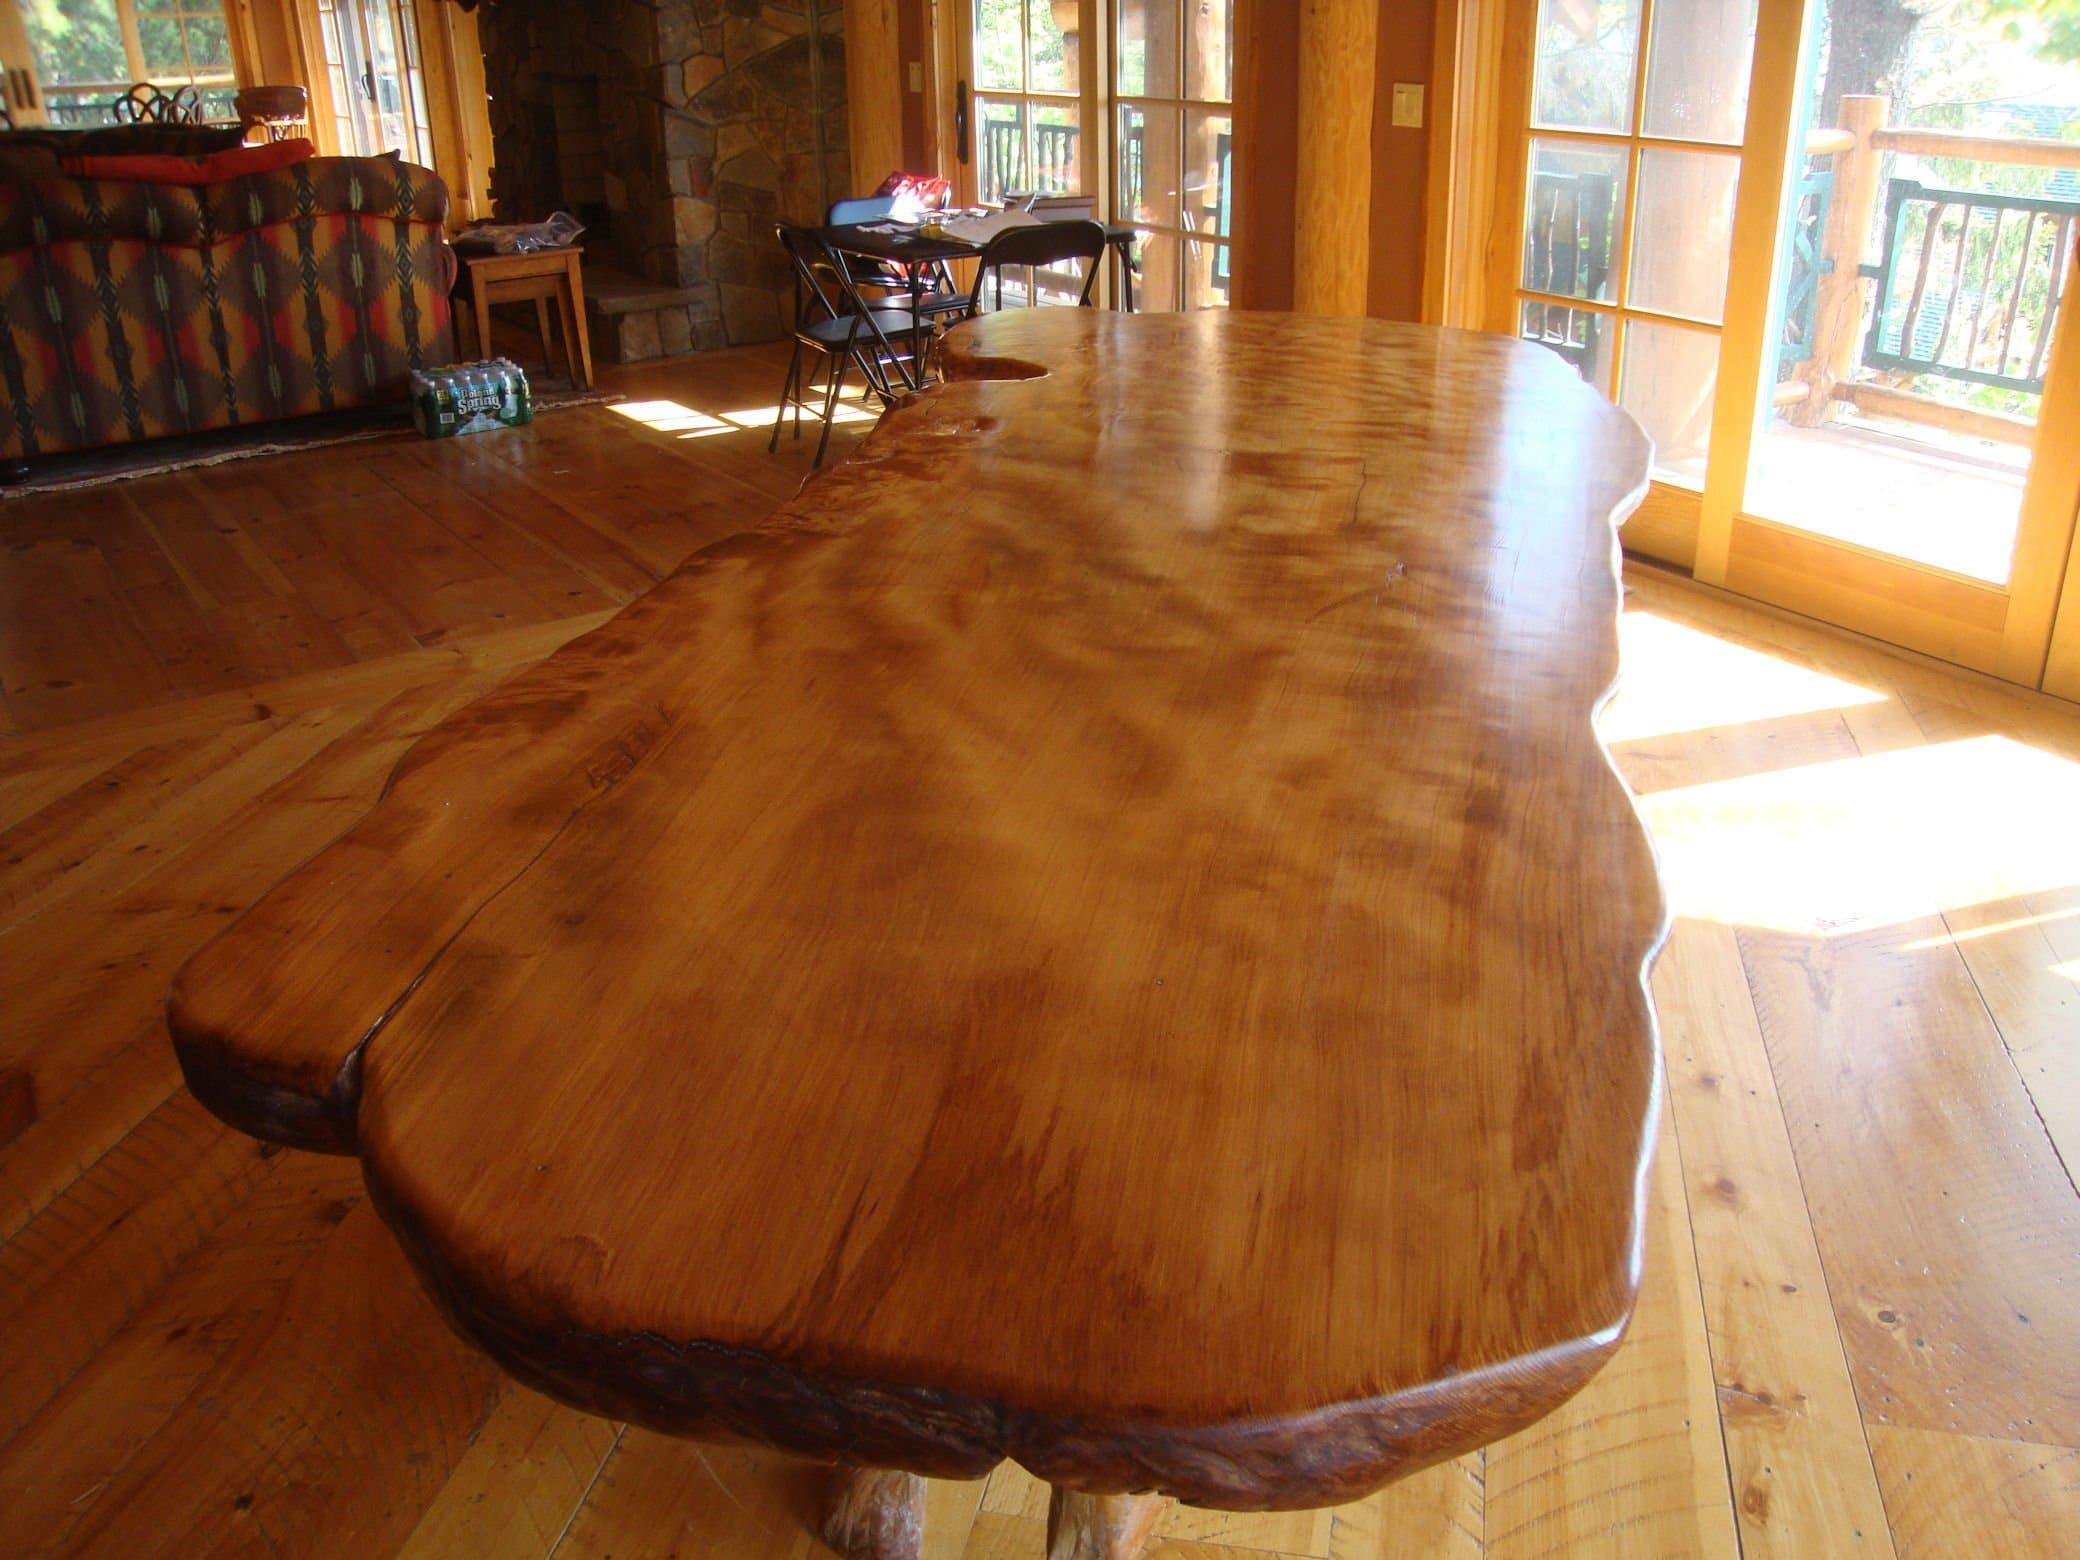 Large Rustic Dining Room Table reclaimed wood dining room table. reclaimed wood table with